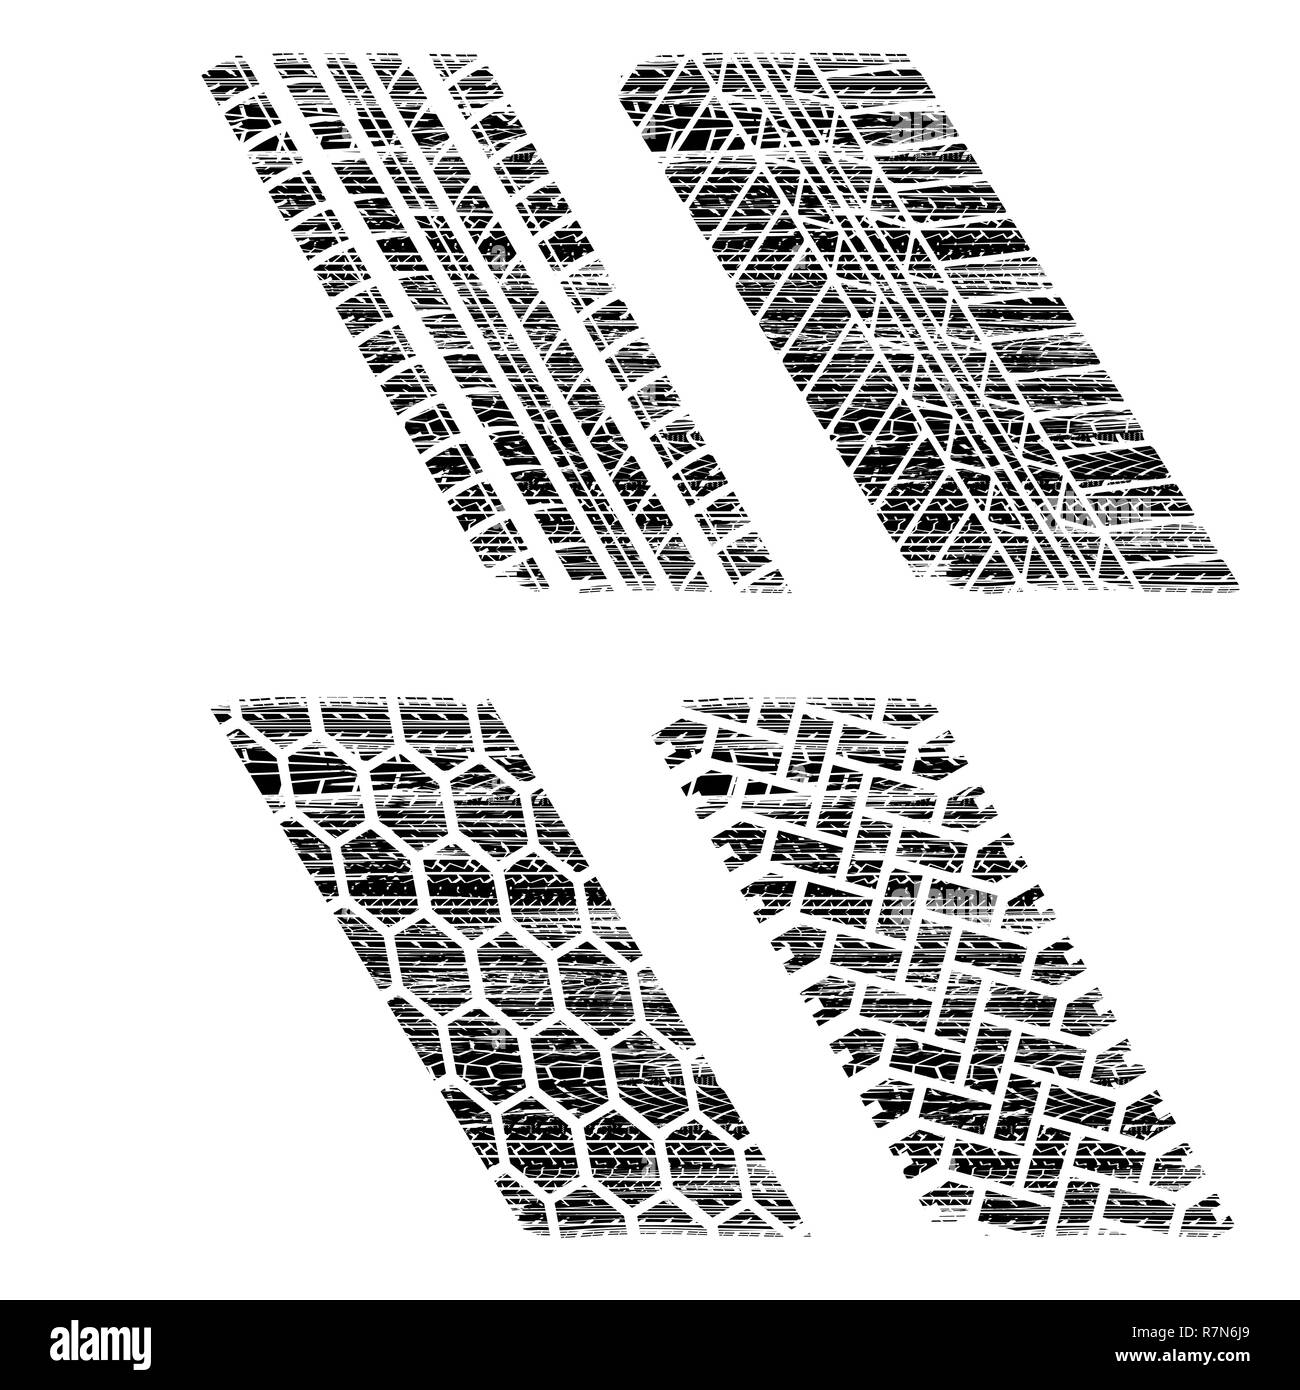 White background with different black grunge tire tracks - Stock Image